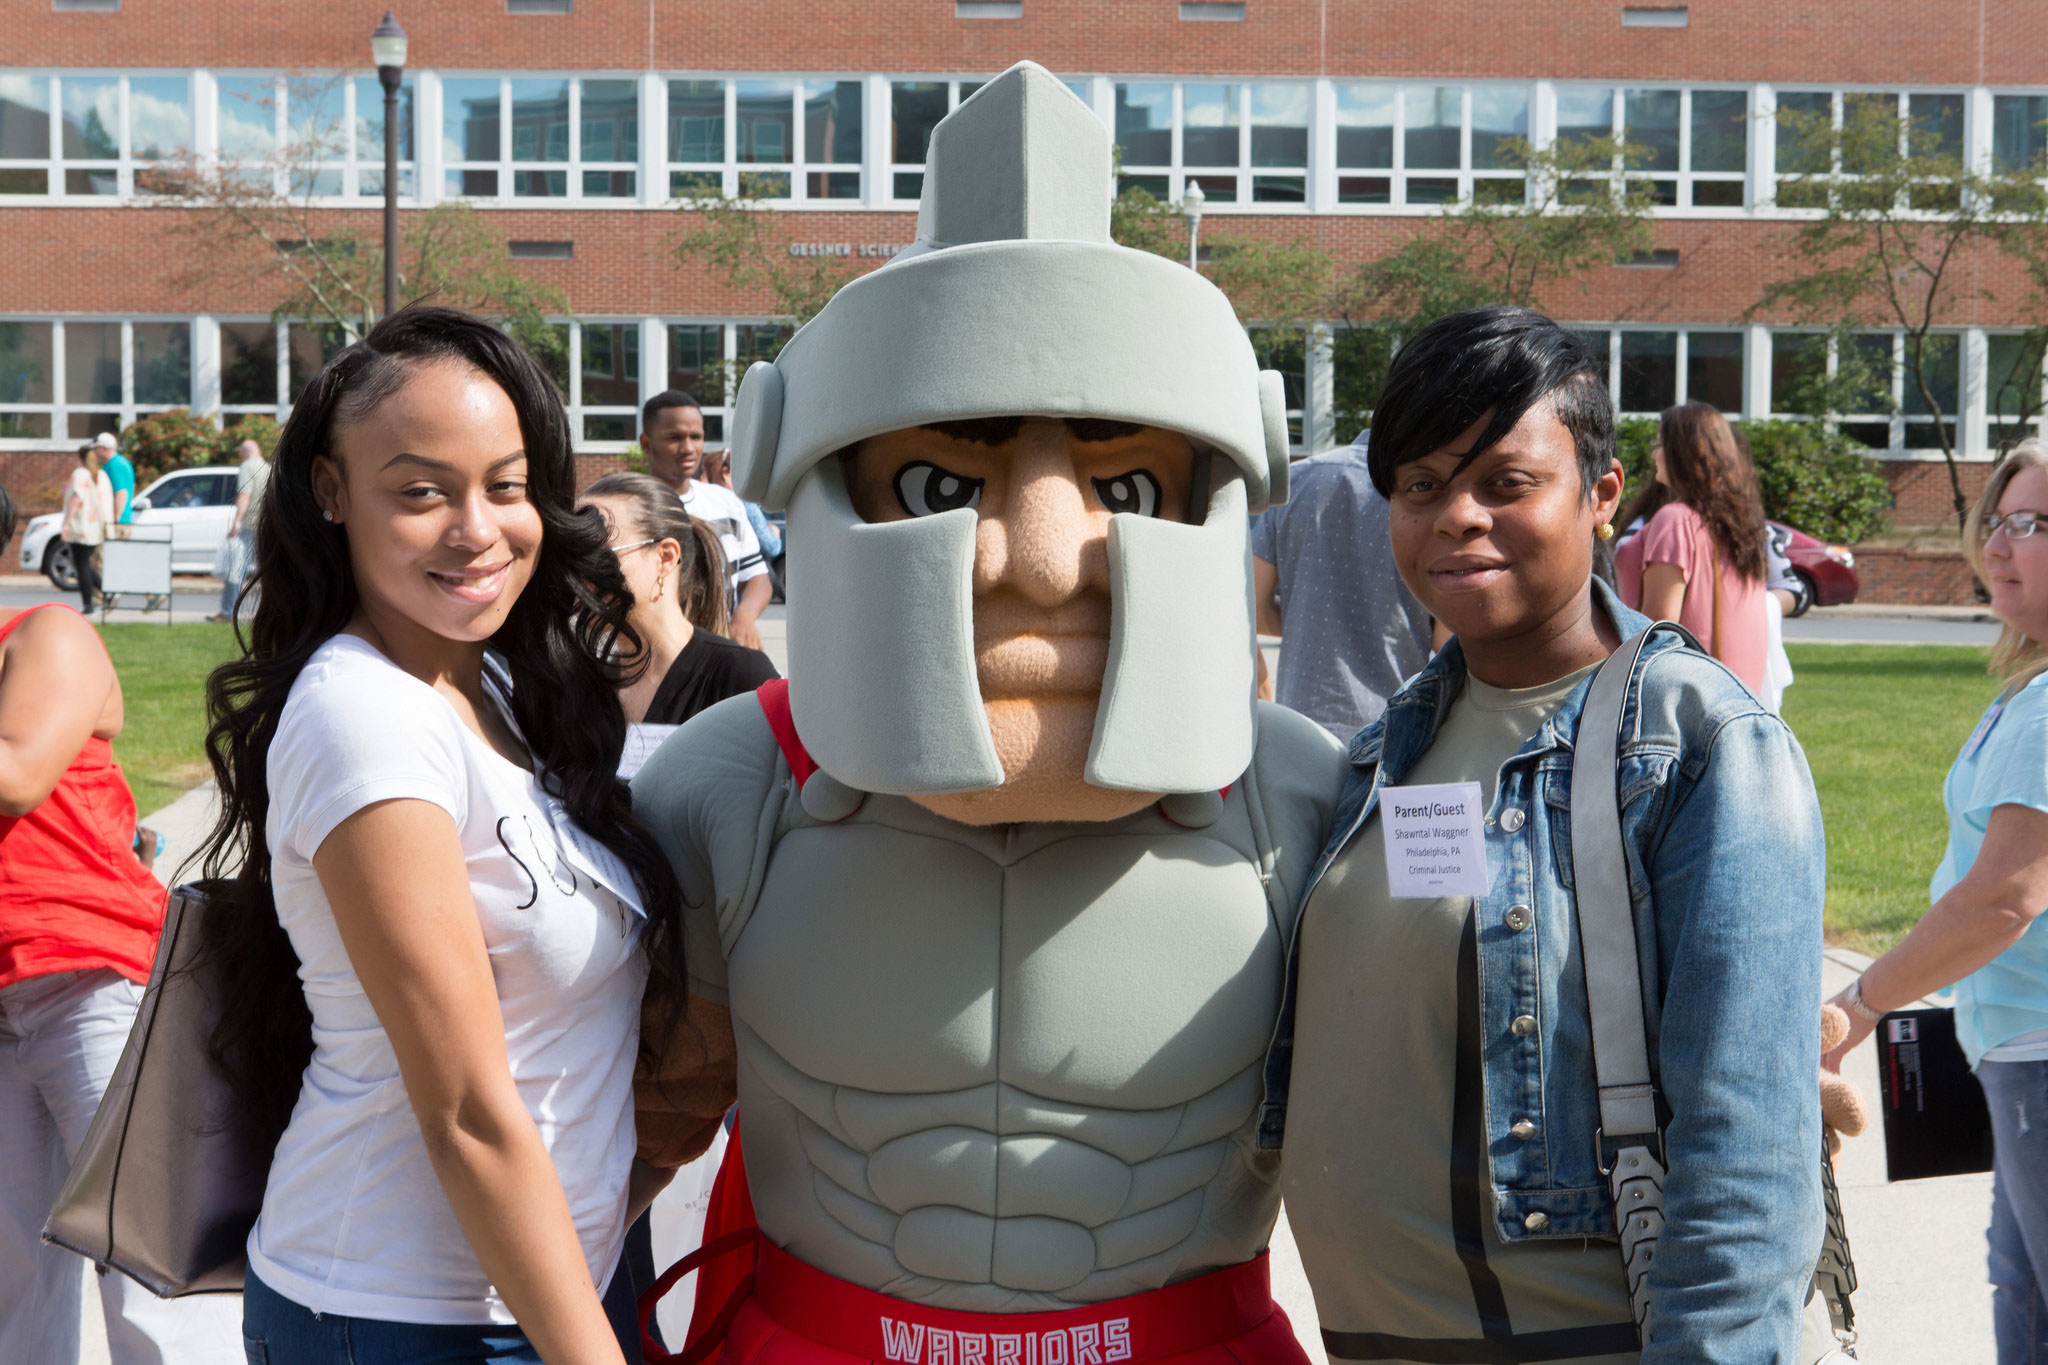 Students posing with the Warrior mascot